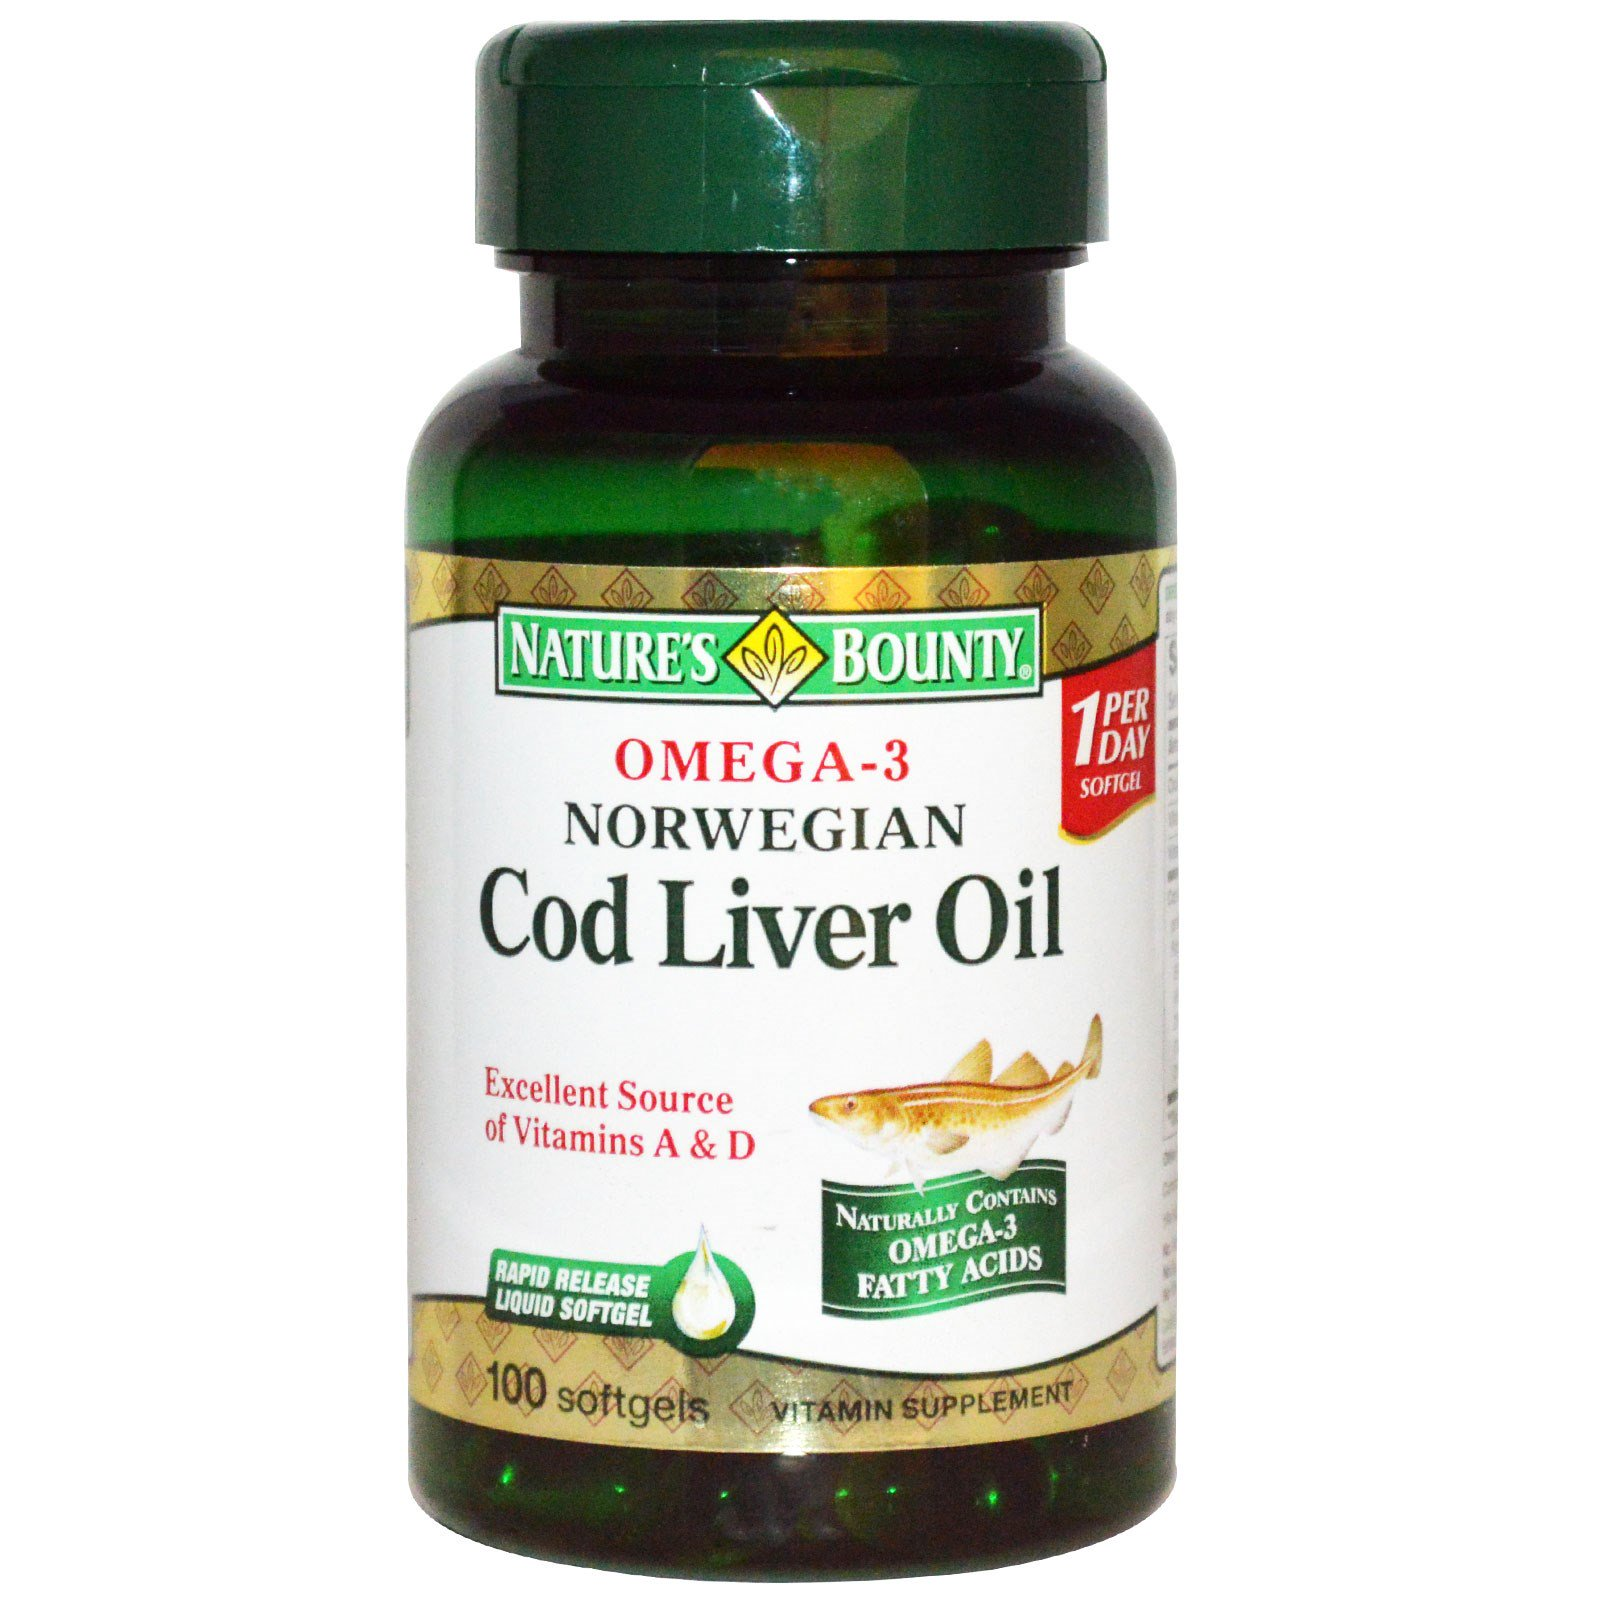 Copy this iHerb Promo Code: YEL it works for all countries. If you are a first time user click here to get $5 off + 10% discount with our iHerb coupon code for transactions above $60, get up to 50% off discount on the selected products at kaipelrikun.ml, you can find a range of health niche products at iHerb and it has delivery options to several countries.